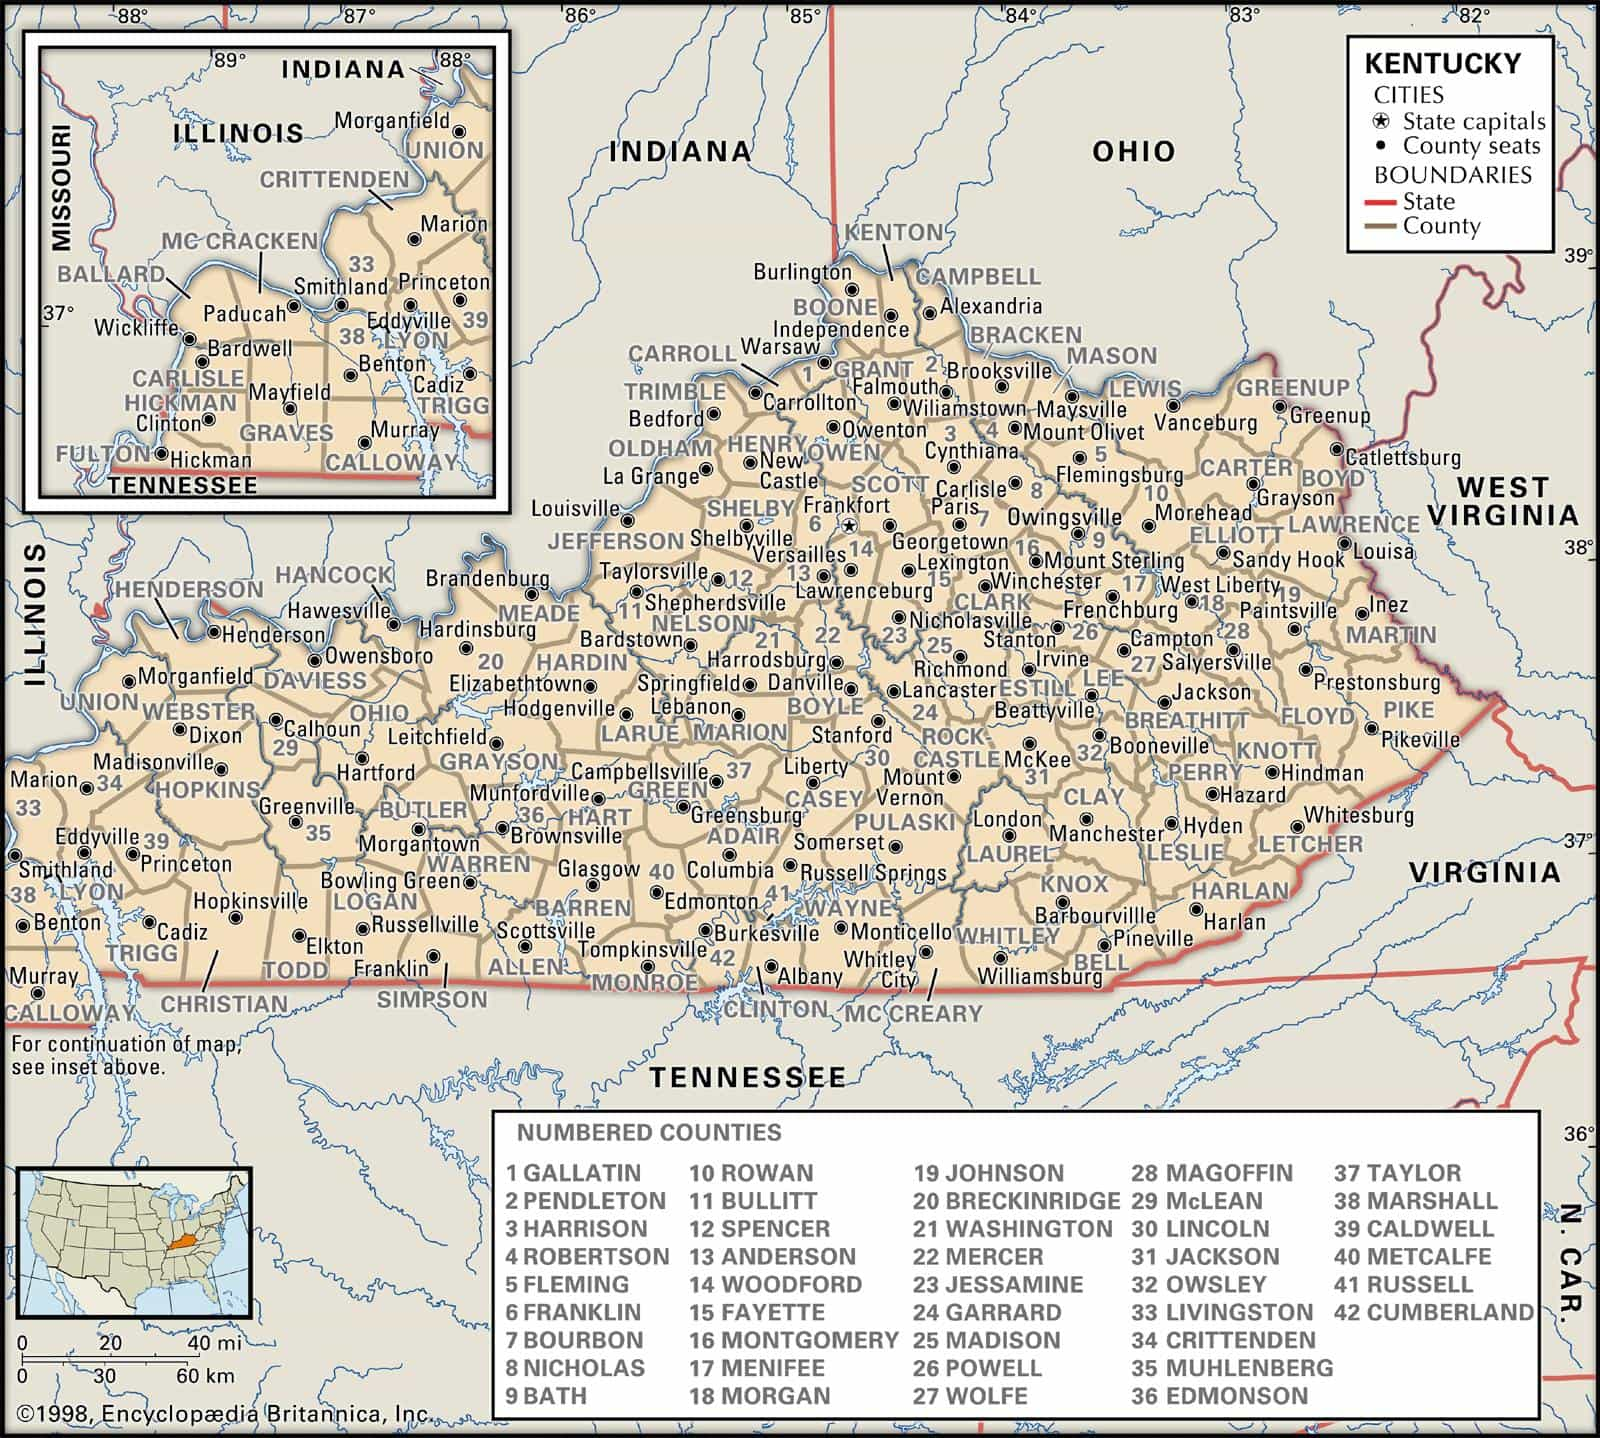 Historical Facts of Kentucky Counties